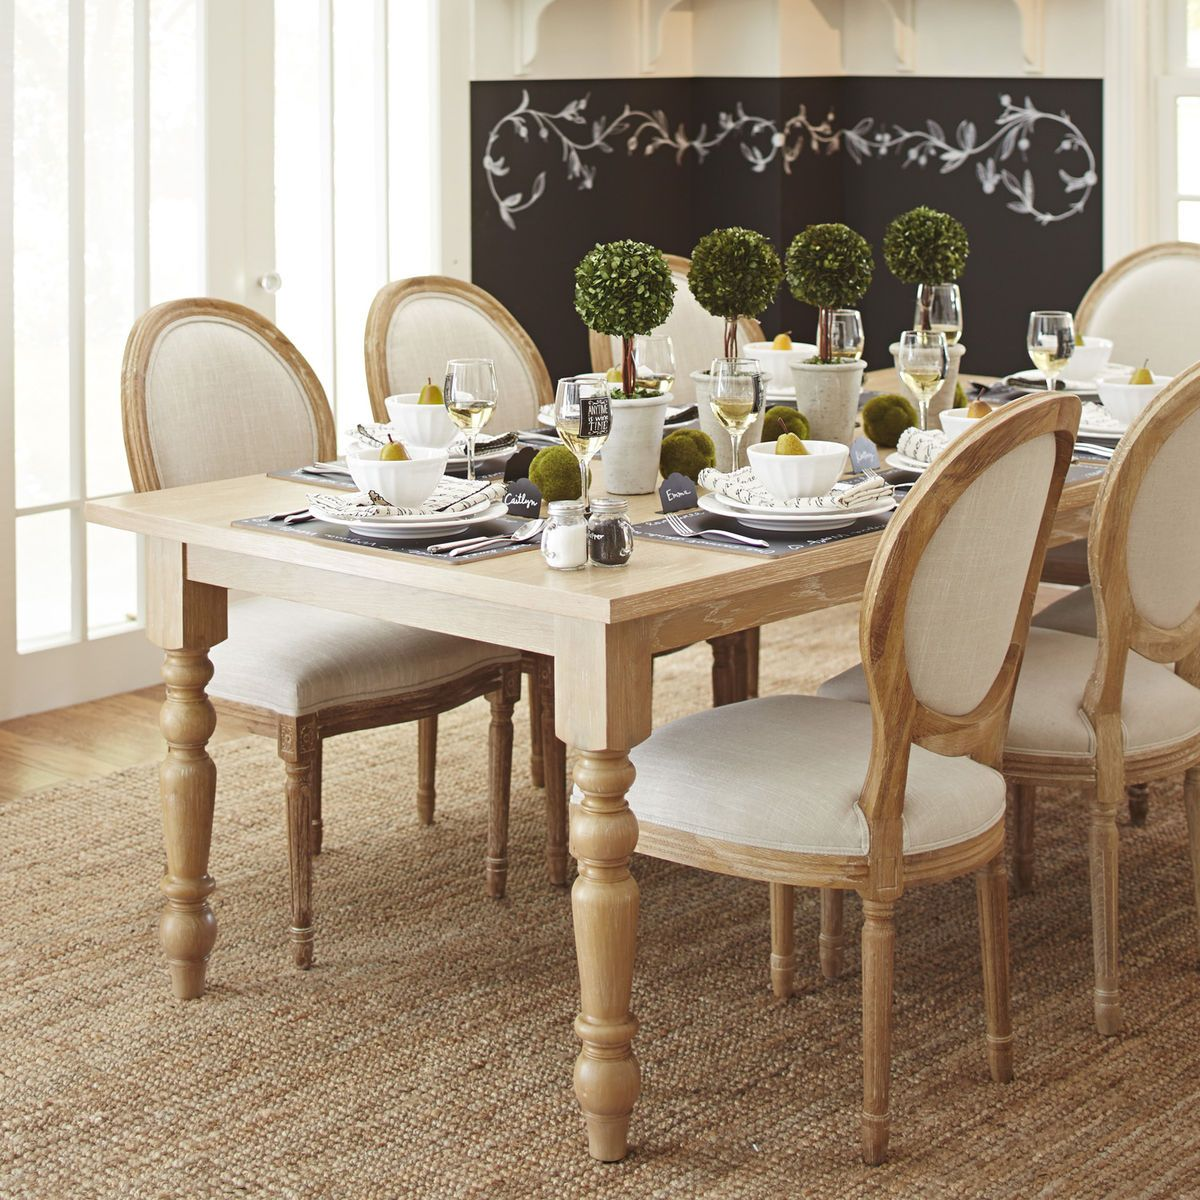 French Country Dining Set - Natural Whitewash | Pier 1 Imports ...